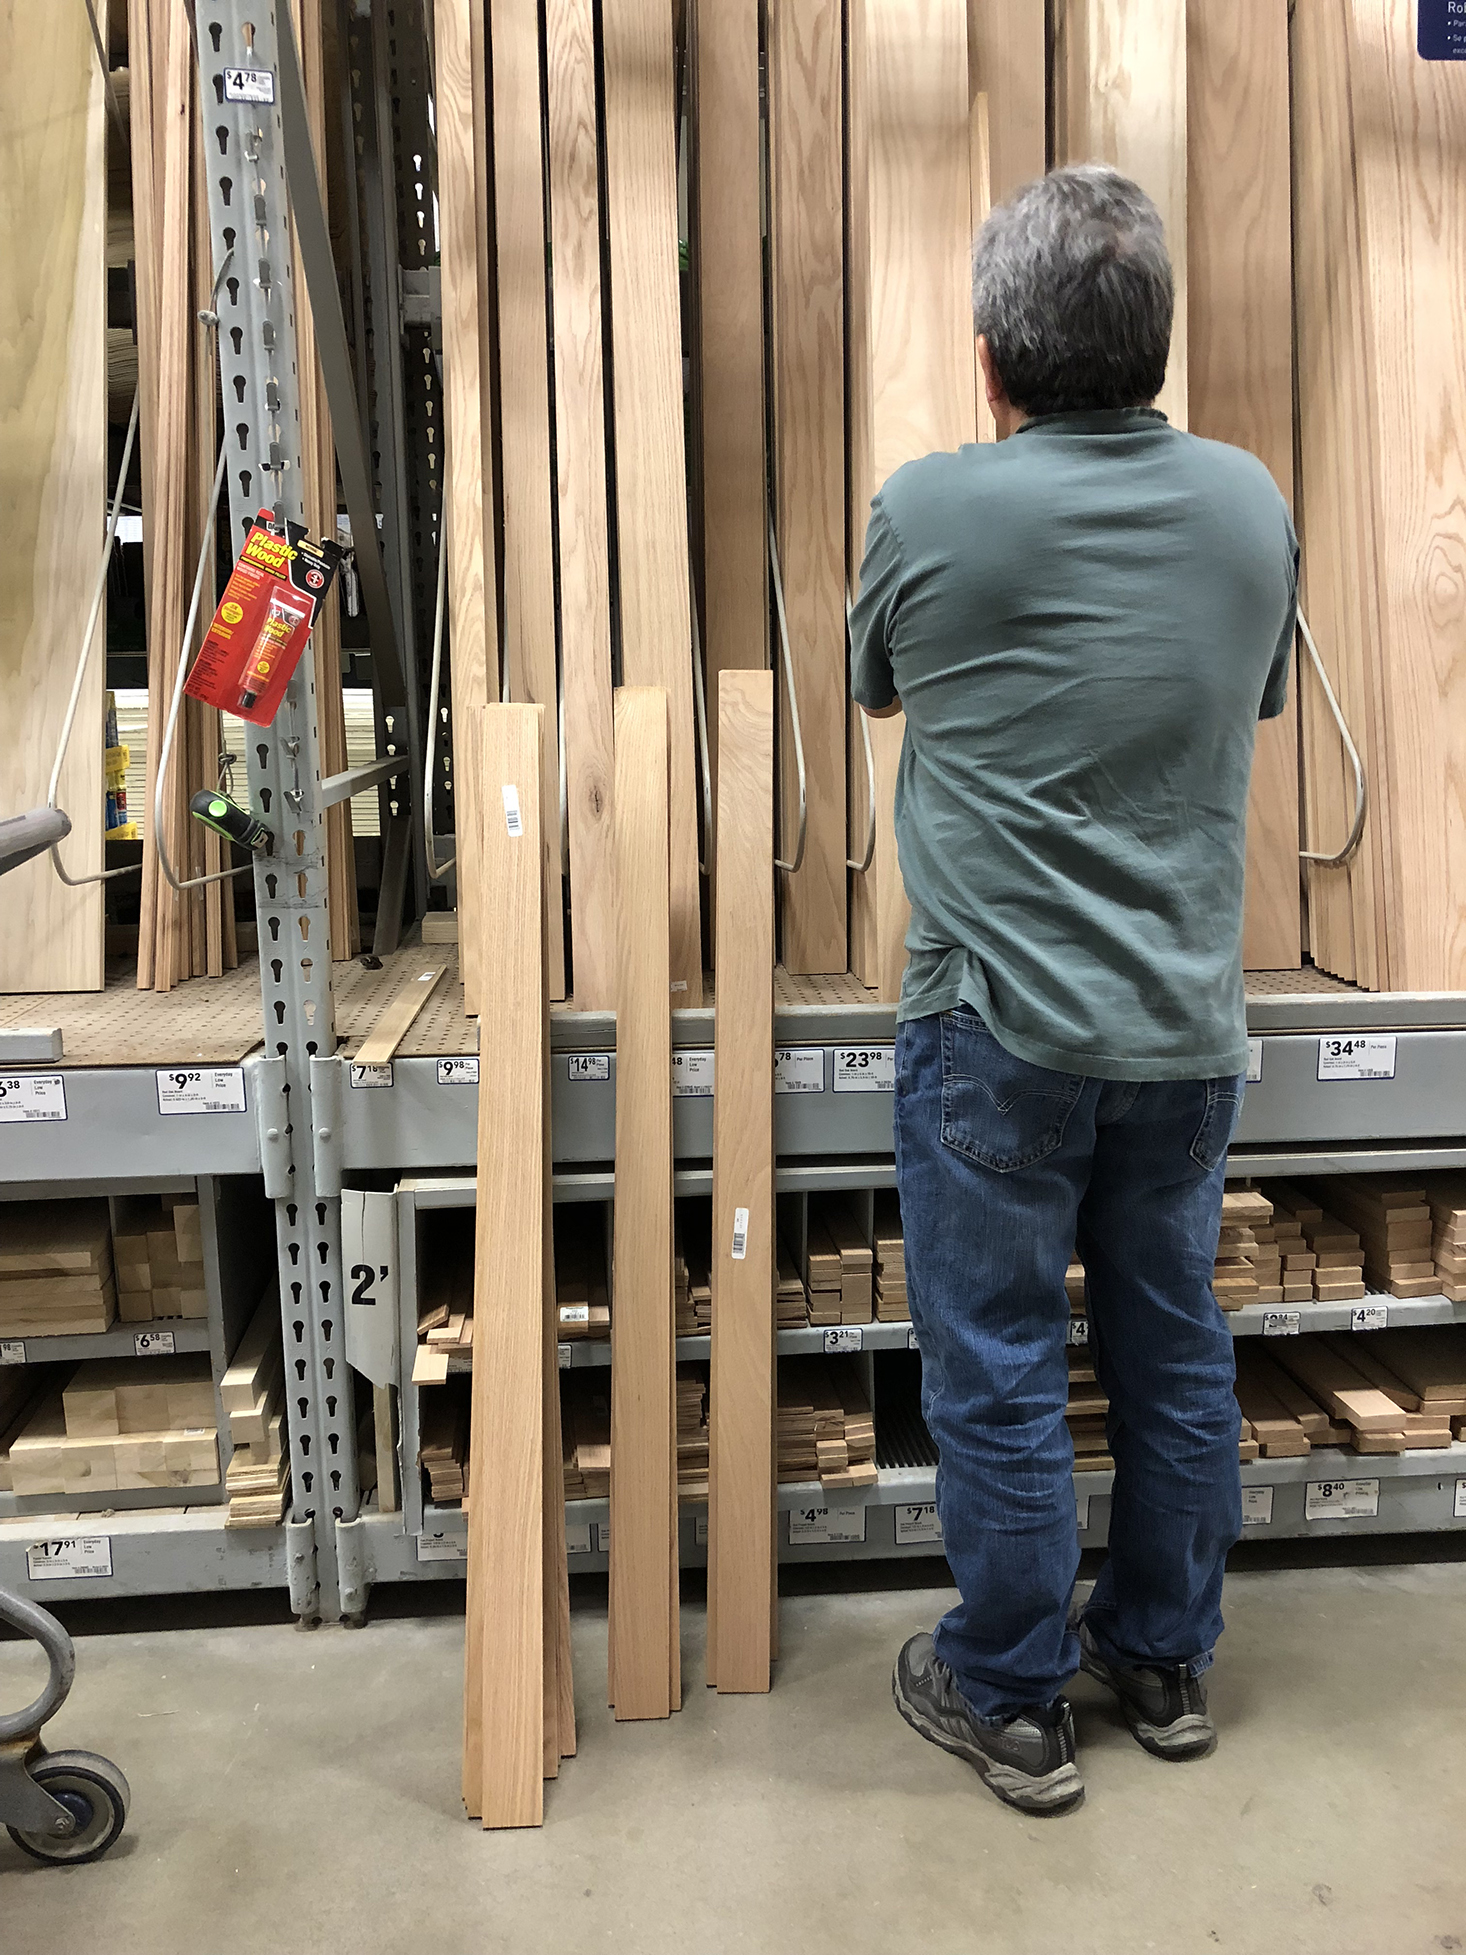 Organizing wood planks